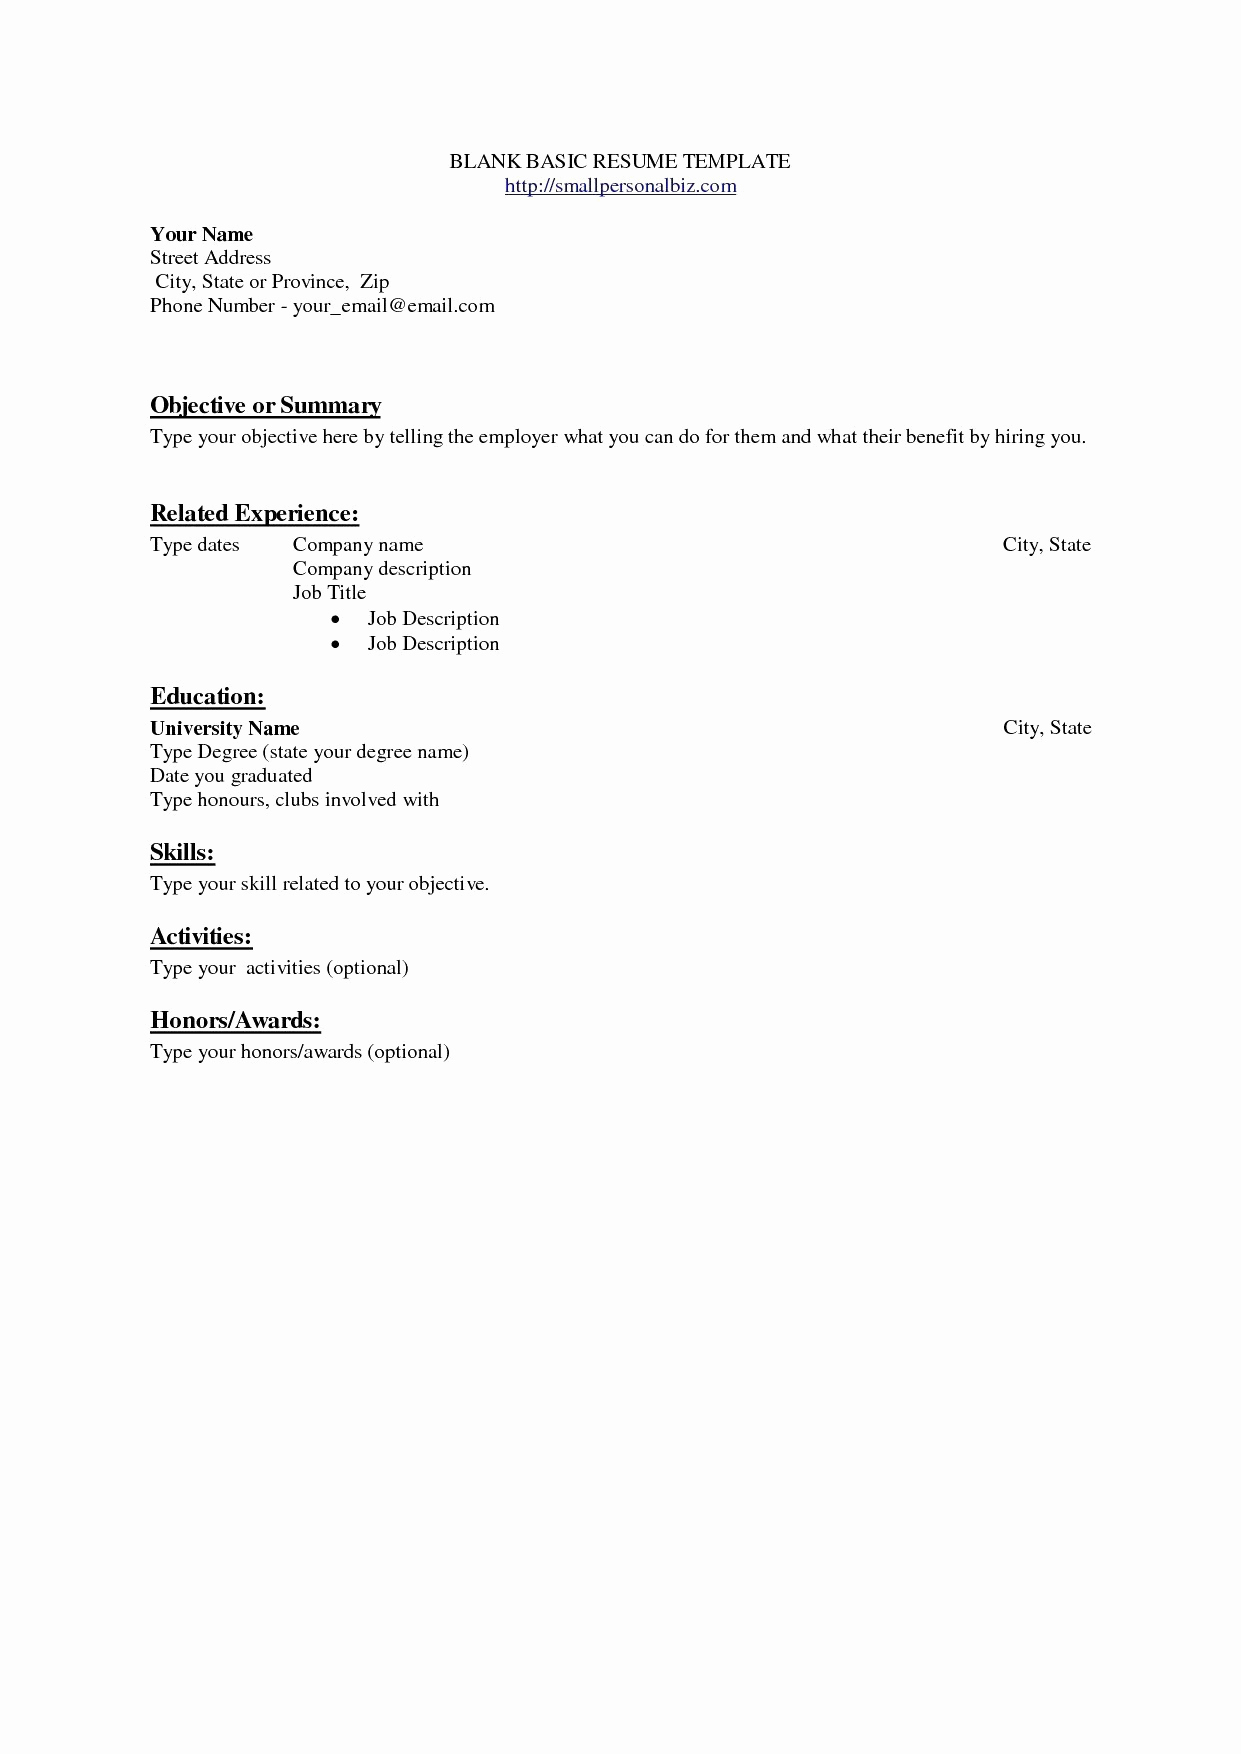 College Football Spreadsheet Fresh Example College Resume Fresh 4210 Inside Resume Spreadsheet